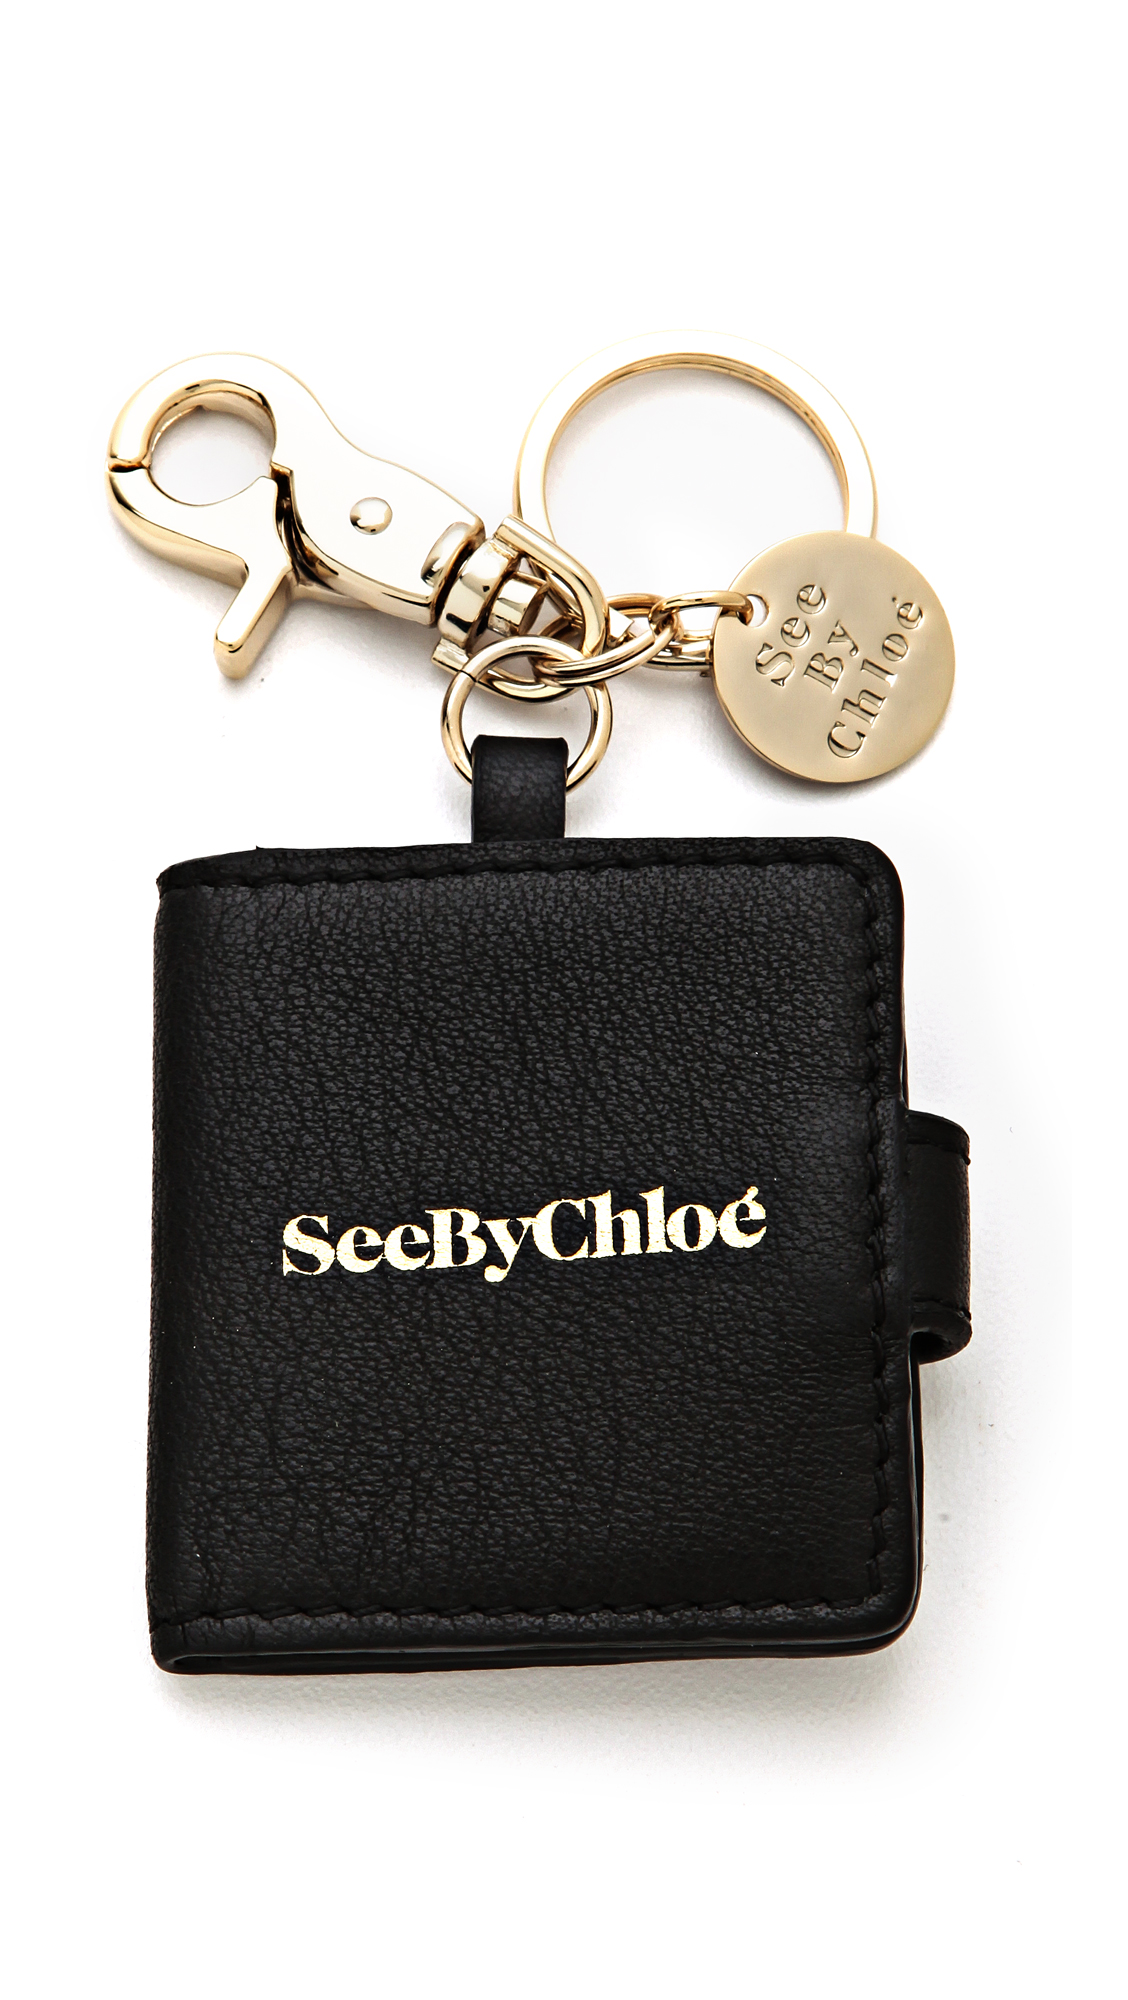 See by chloe picture frame keychain shopbop jeuxipadfo Image collections